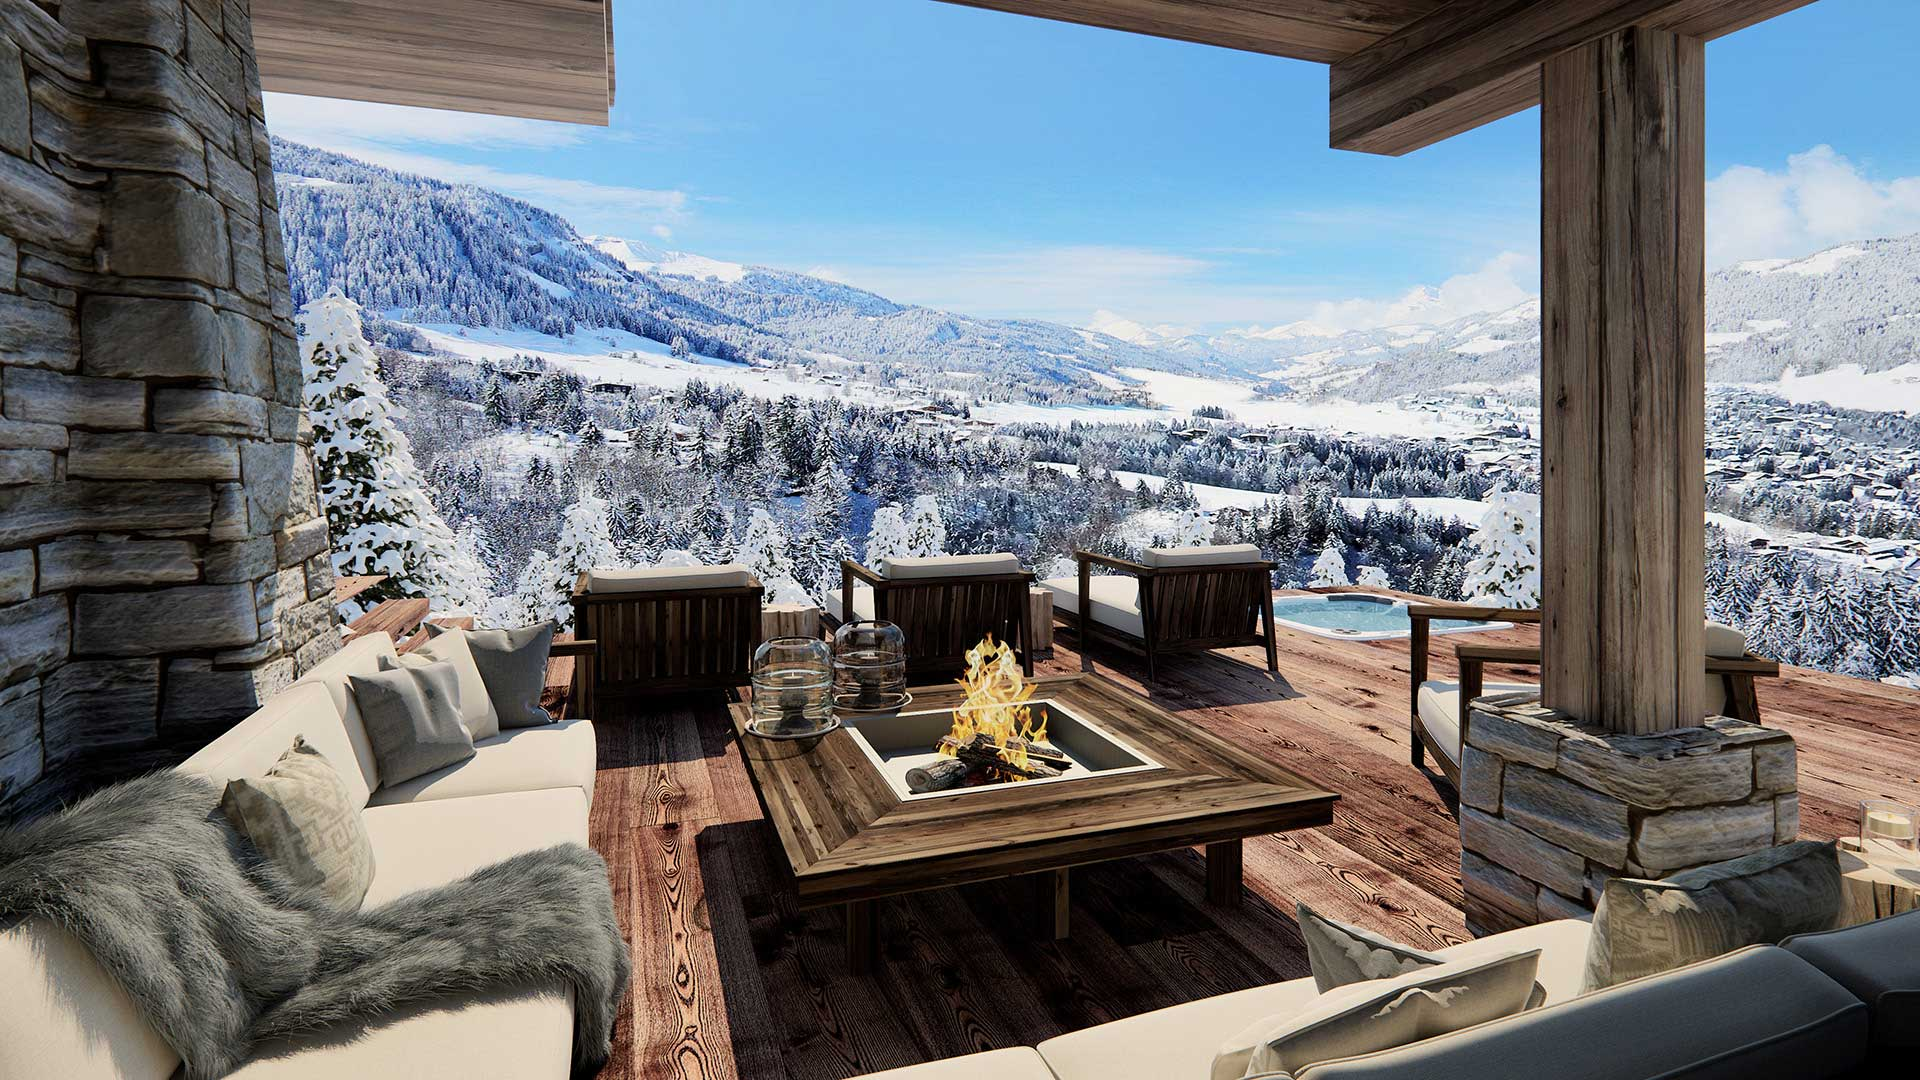 cr ation 3d d 39 une terrasse d 39 un chalet de luxe la montagne. Black Bedroom Furniture Sets. Home Design Ideas